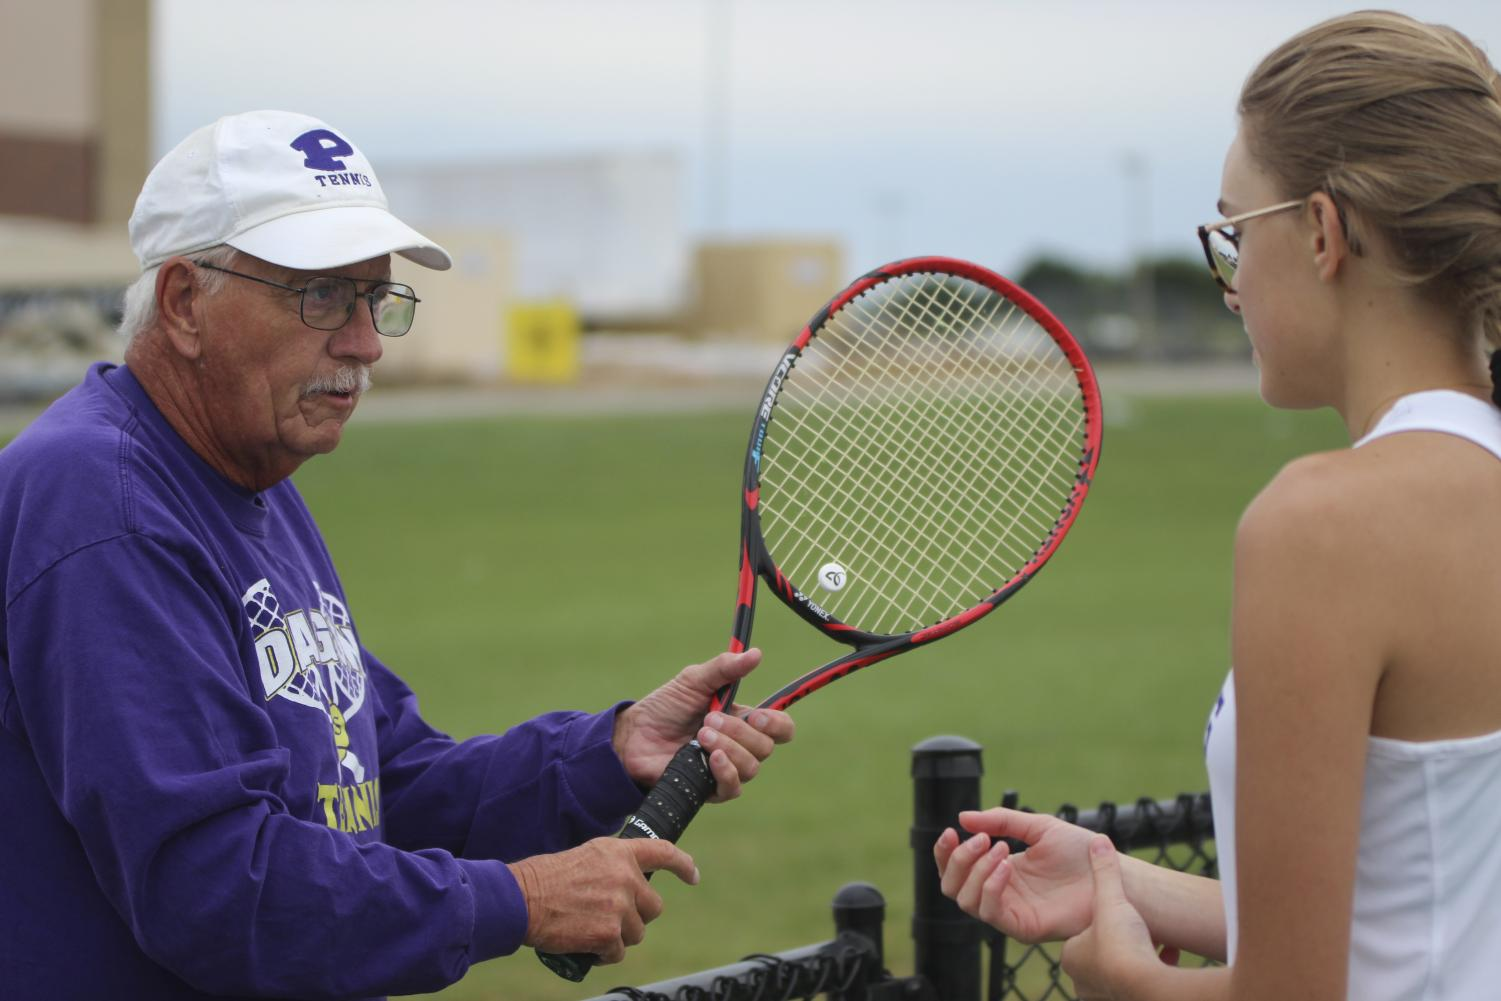 Head coach John Seal conferences with junior Sophia Shope after a match. Seal has coached Shope for her sophomore and junior years and also earned over 700 wins in his coaching career.